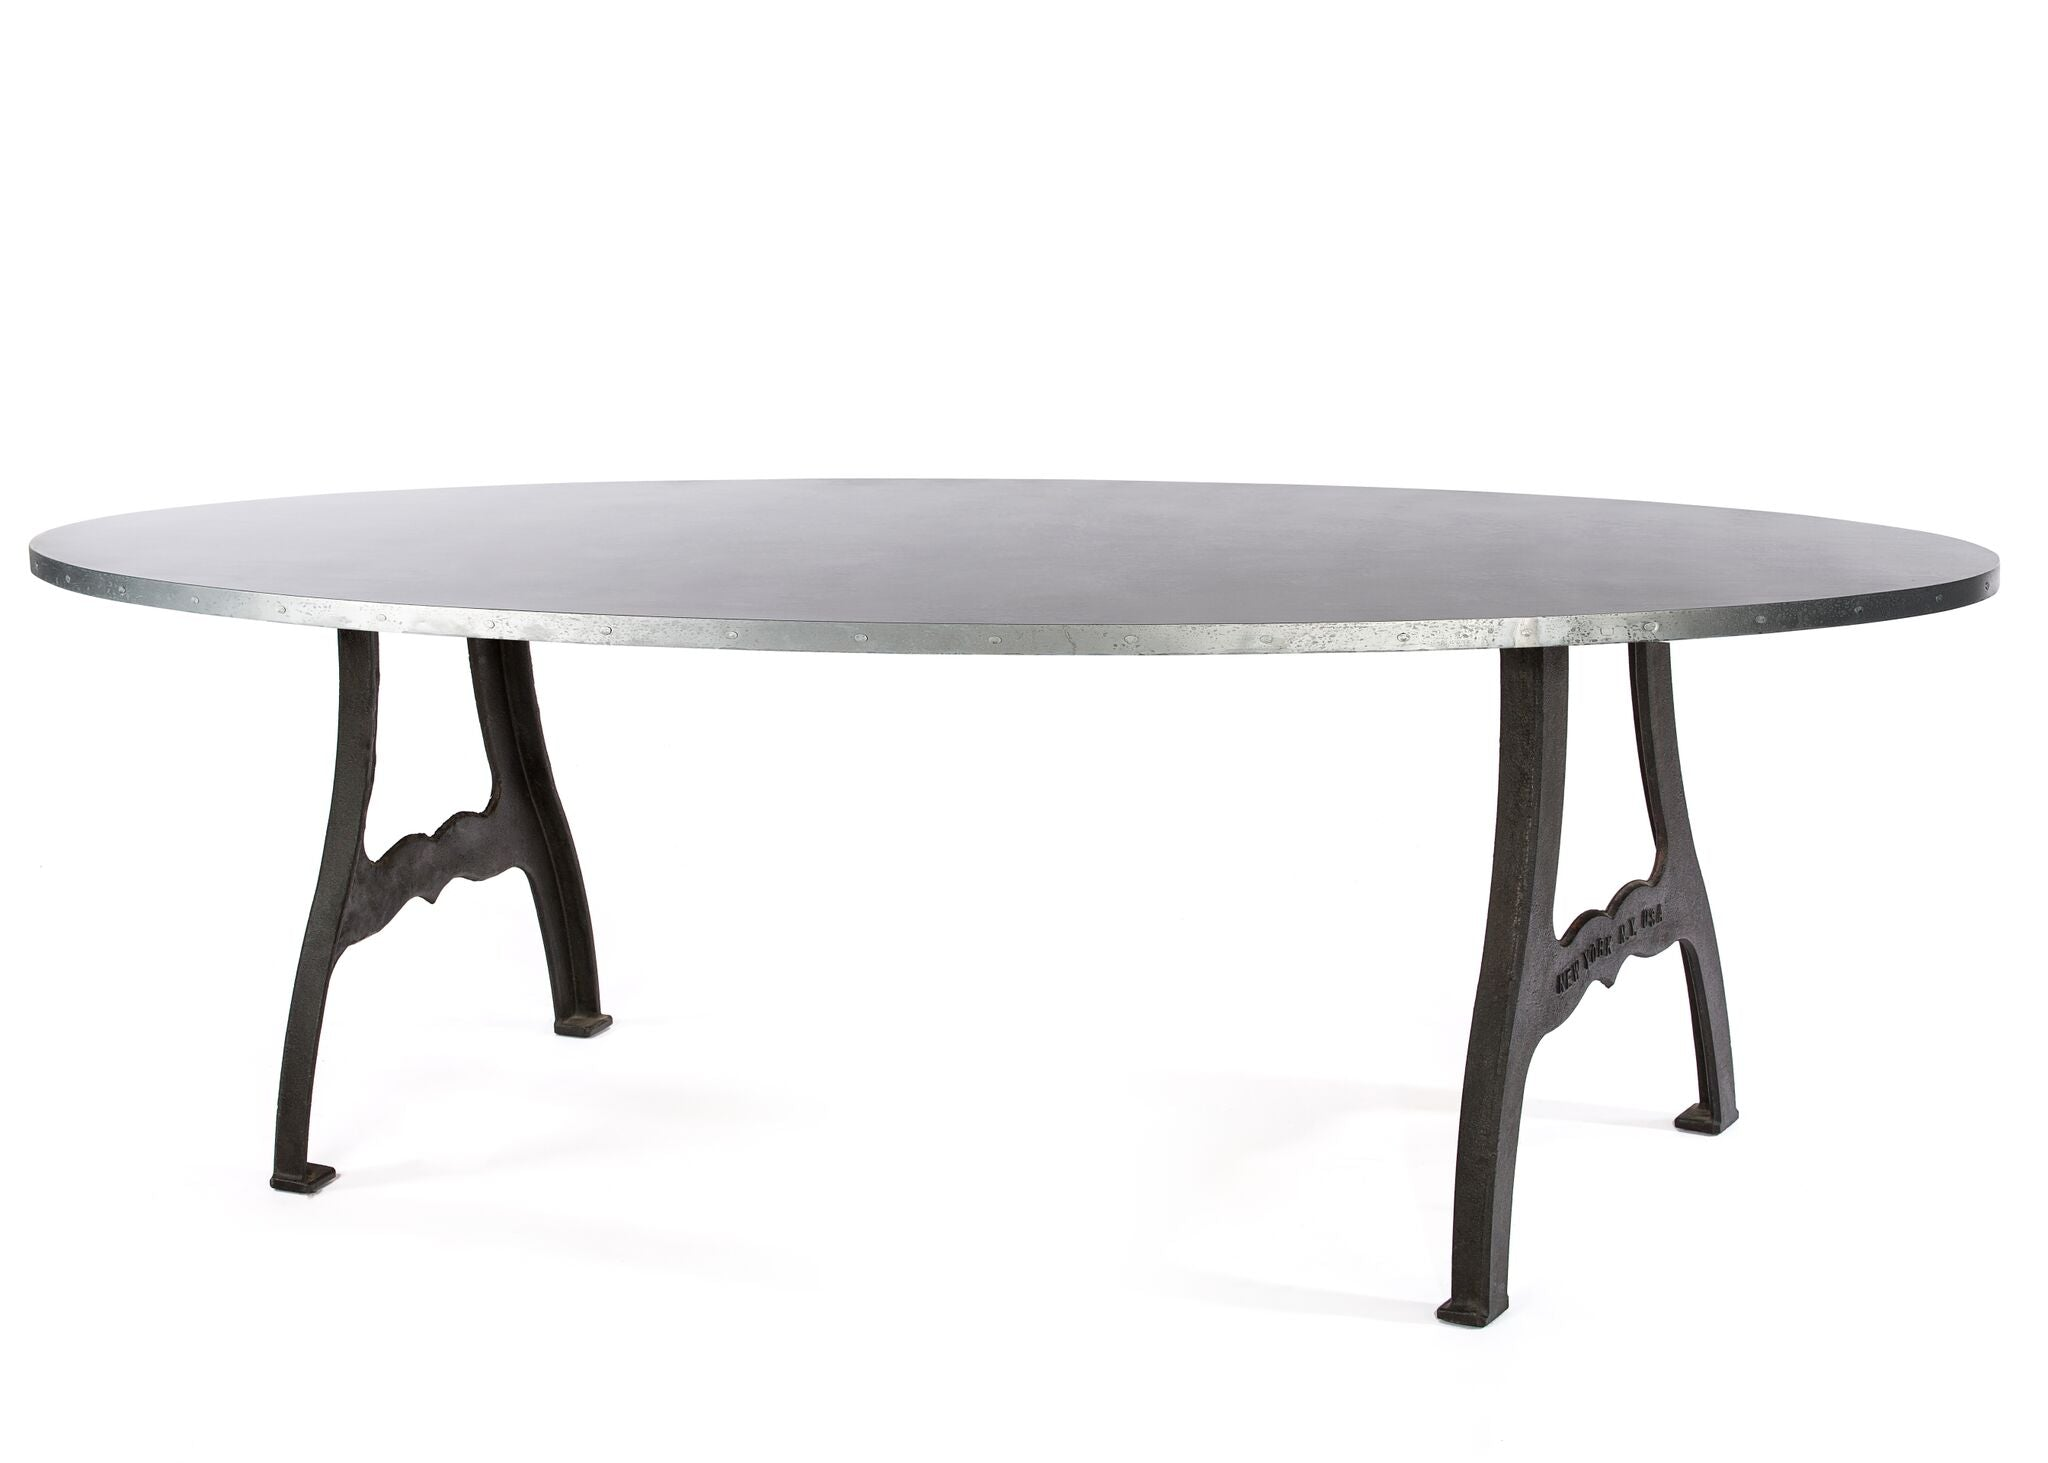 "Zinc Oval Tables | Williamsburg Table | CLASSIC | Black | CUSTOM SIZE L 84 W 42 H 30 | 1.5"" Standard